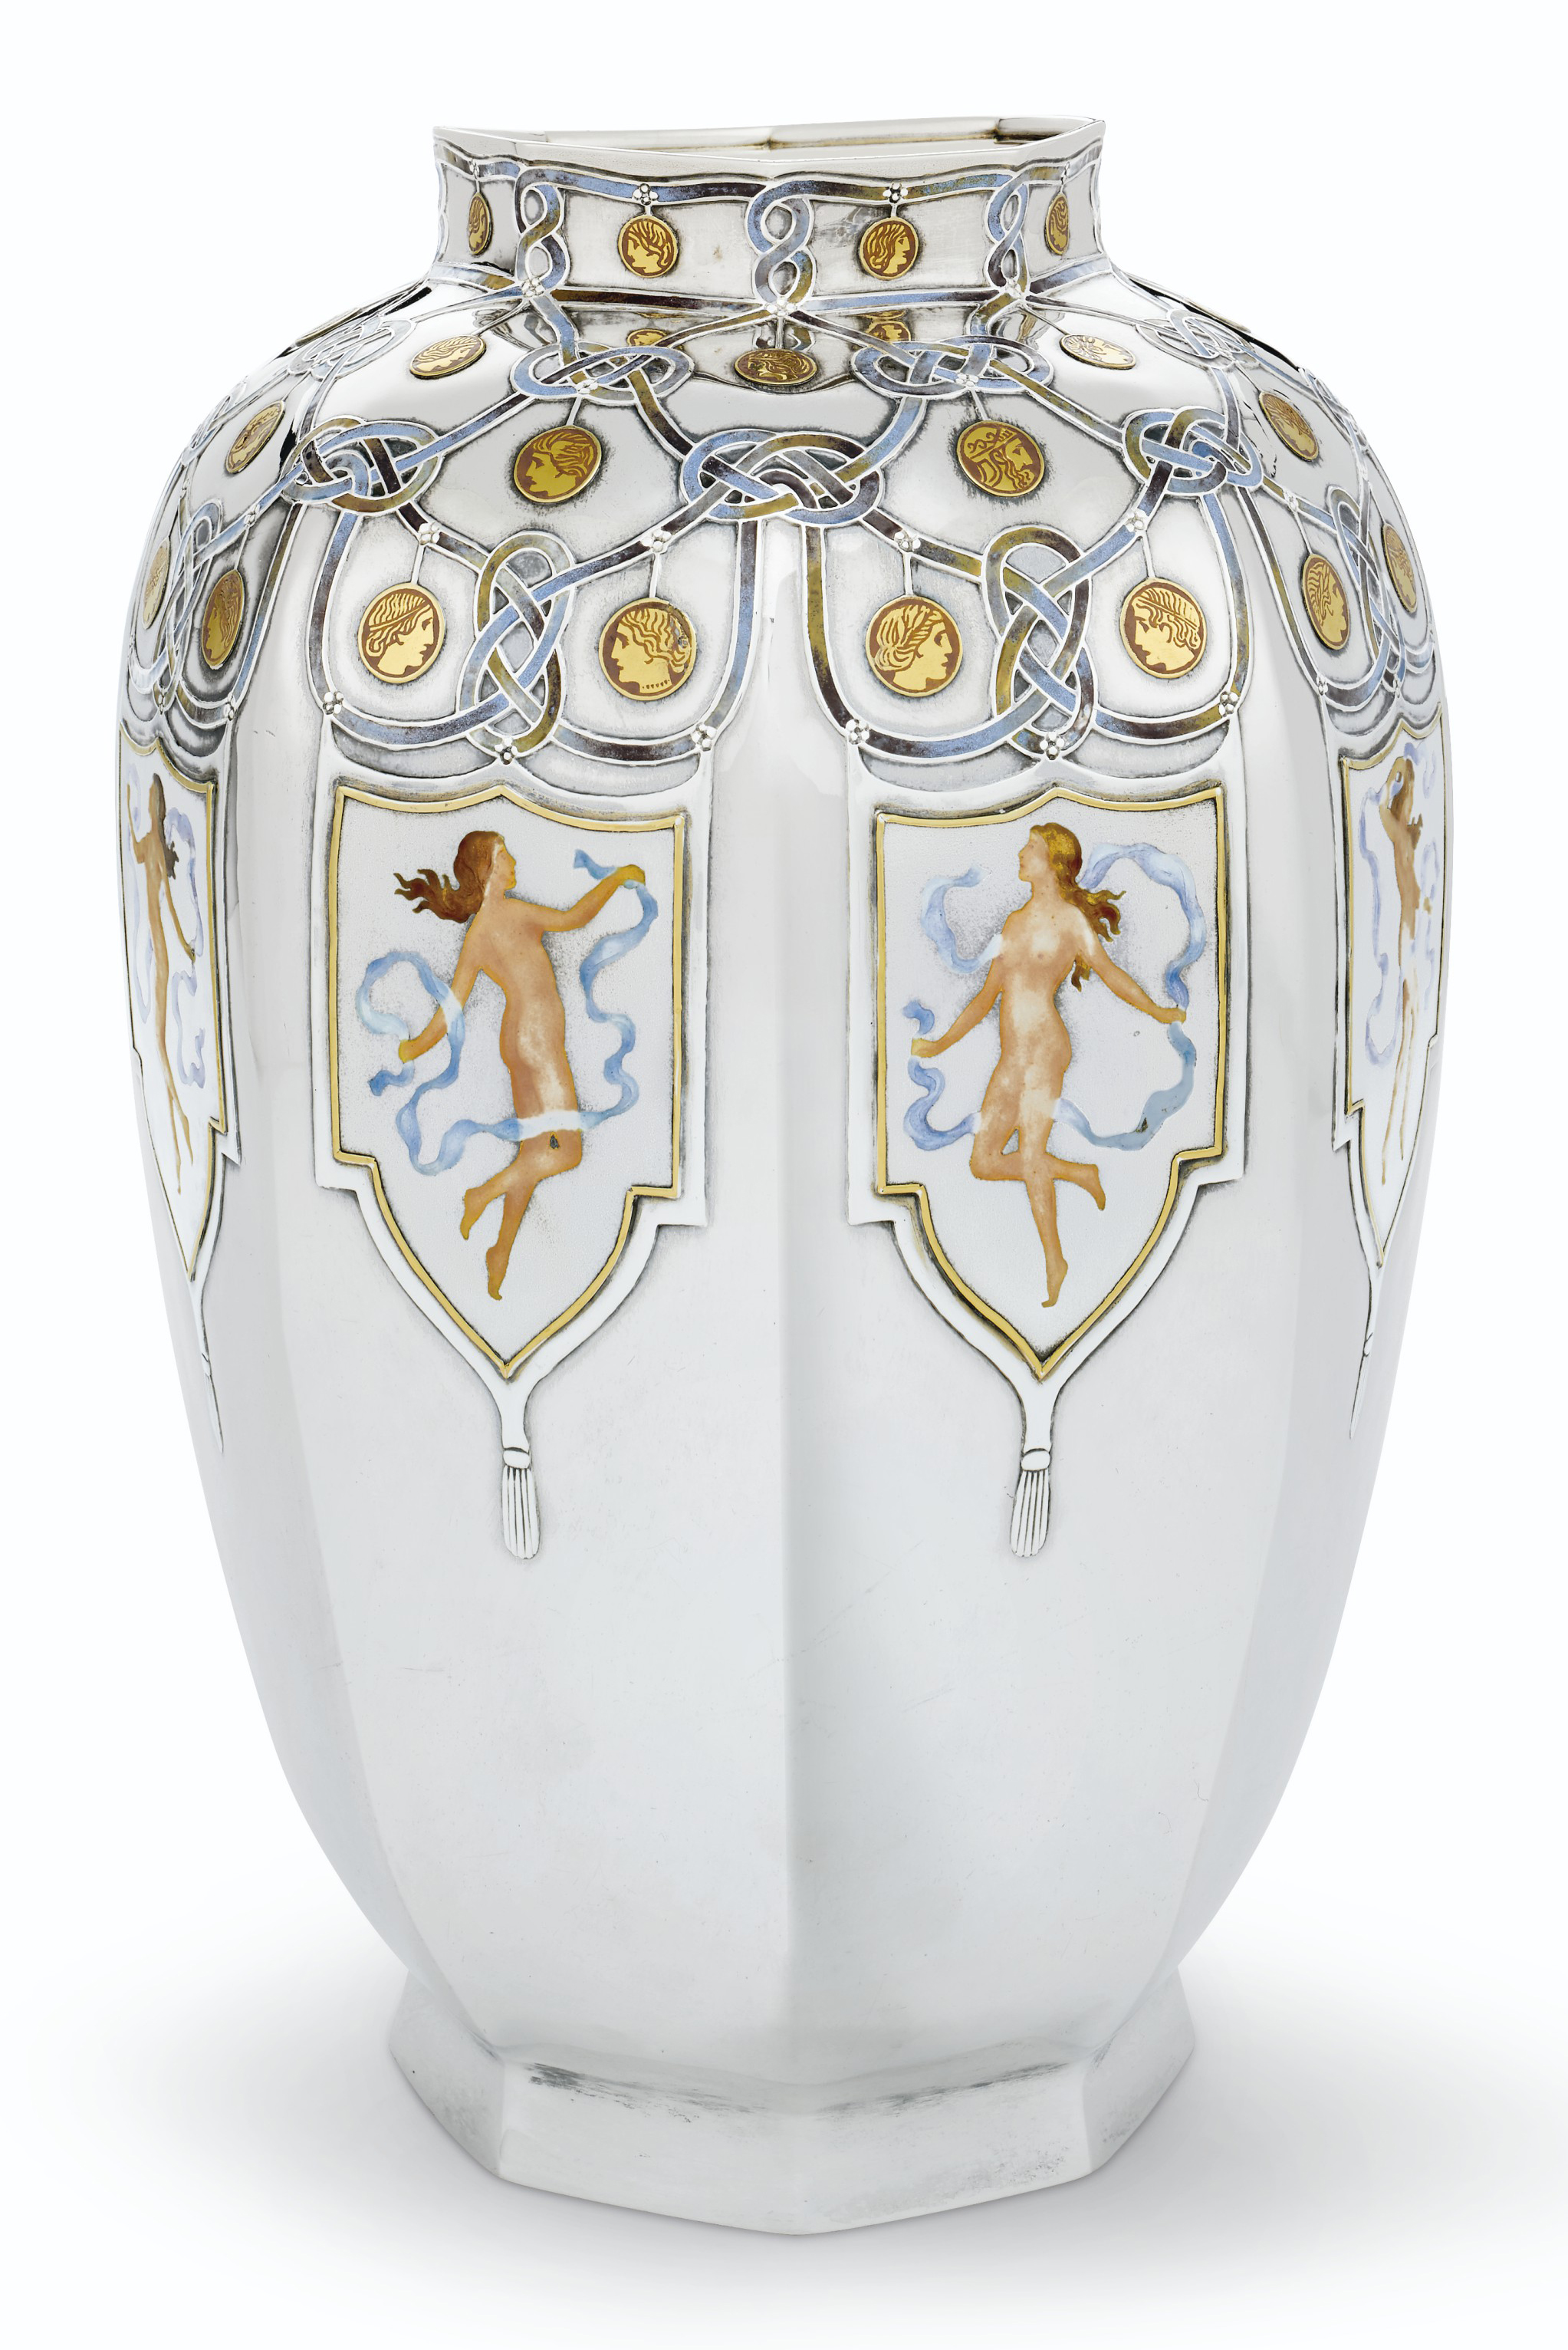 1915 PANAMA-PACIFIC INTERNATIONAL EXPOSITION: AN IMPORTANT AMERICAN SILVER, GOLD AND ENAMEL VASE